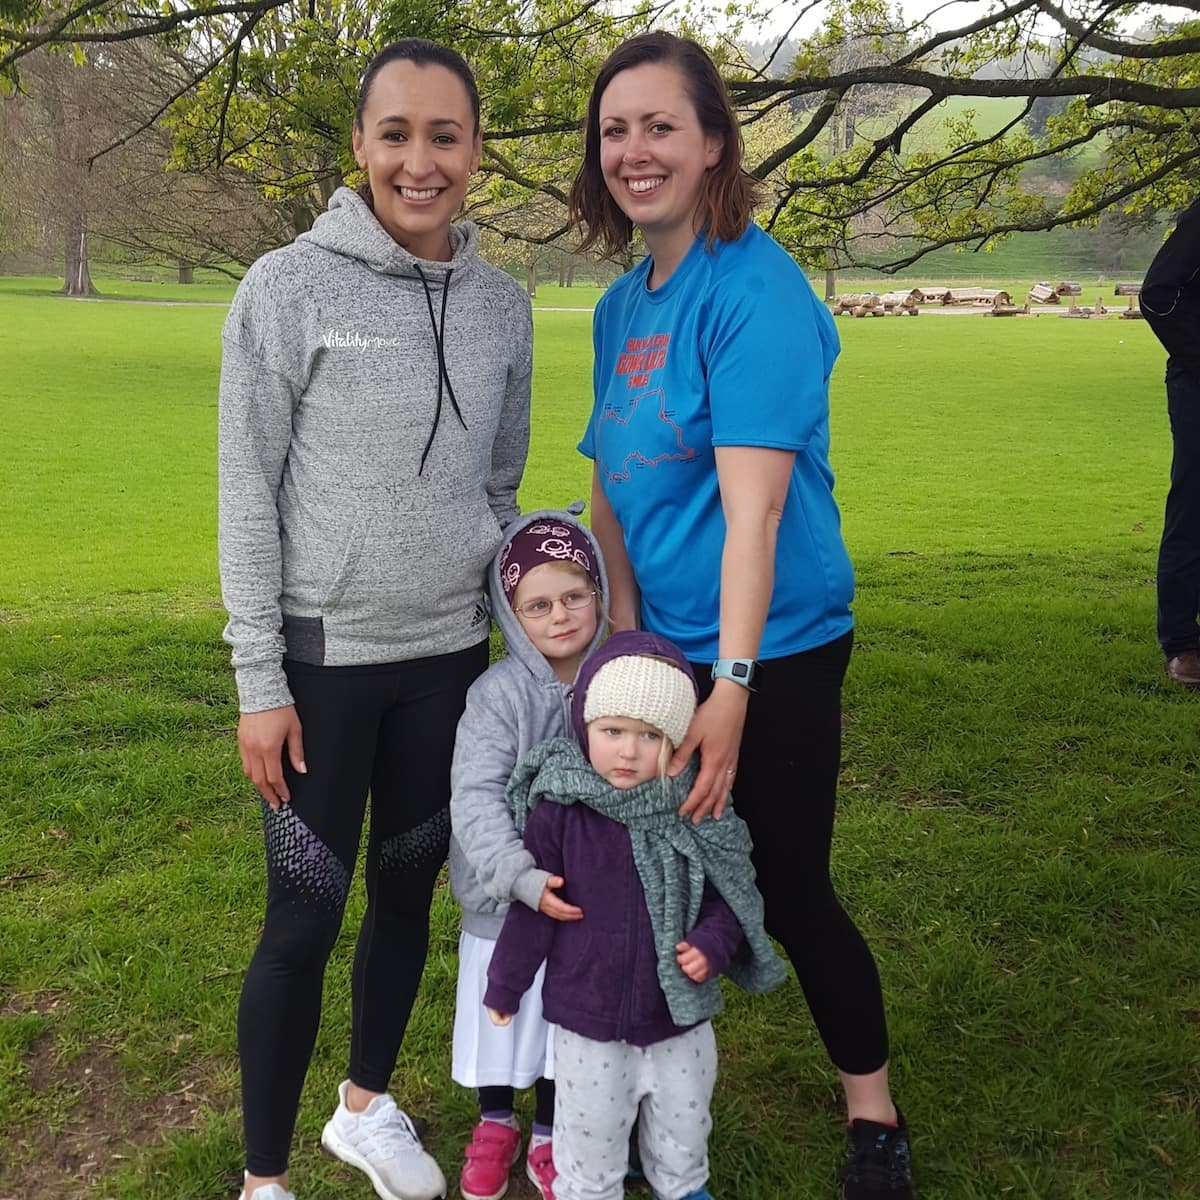 Thursday photo 155, the day we ran with Dame Jessica Ennis-Hill